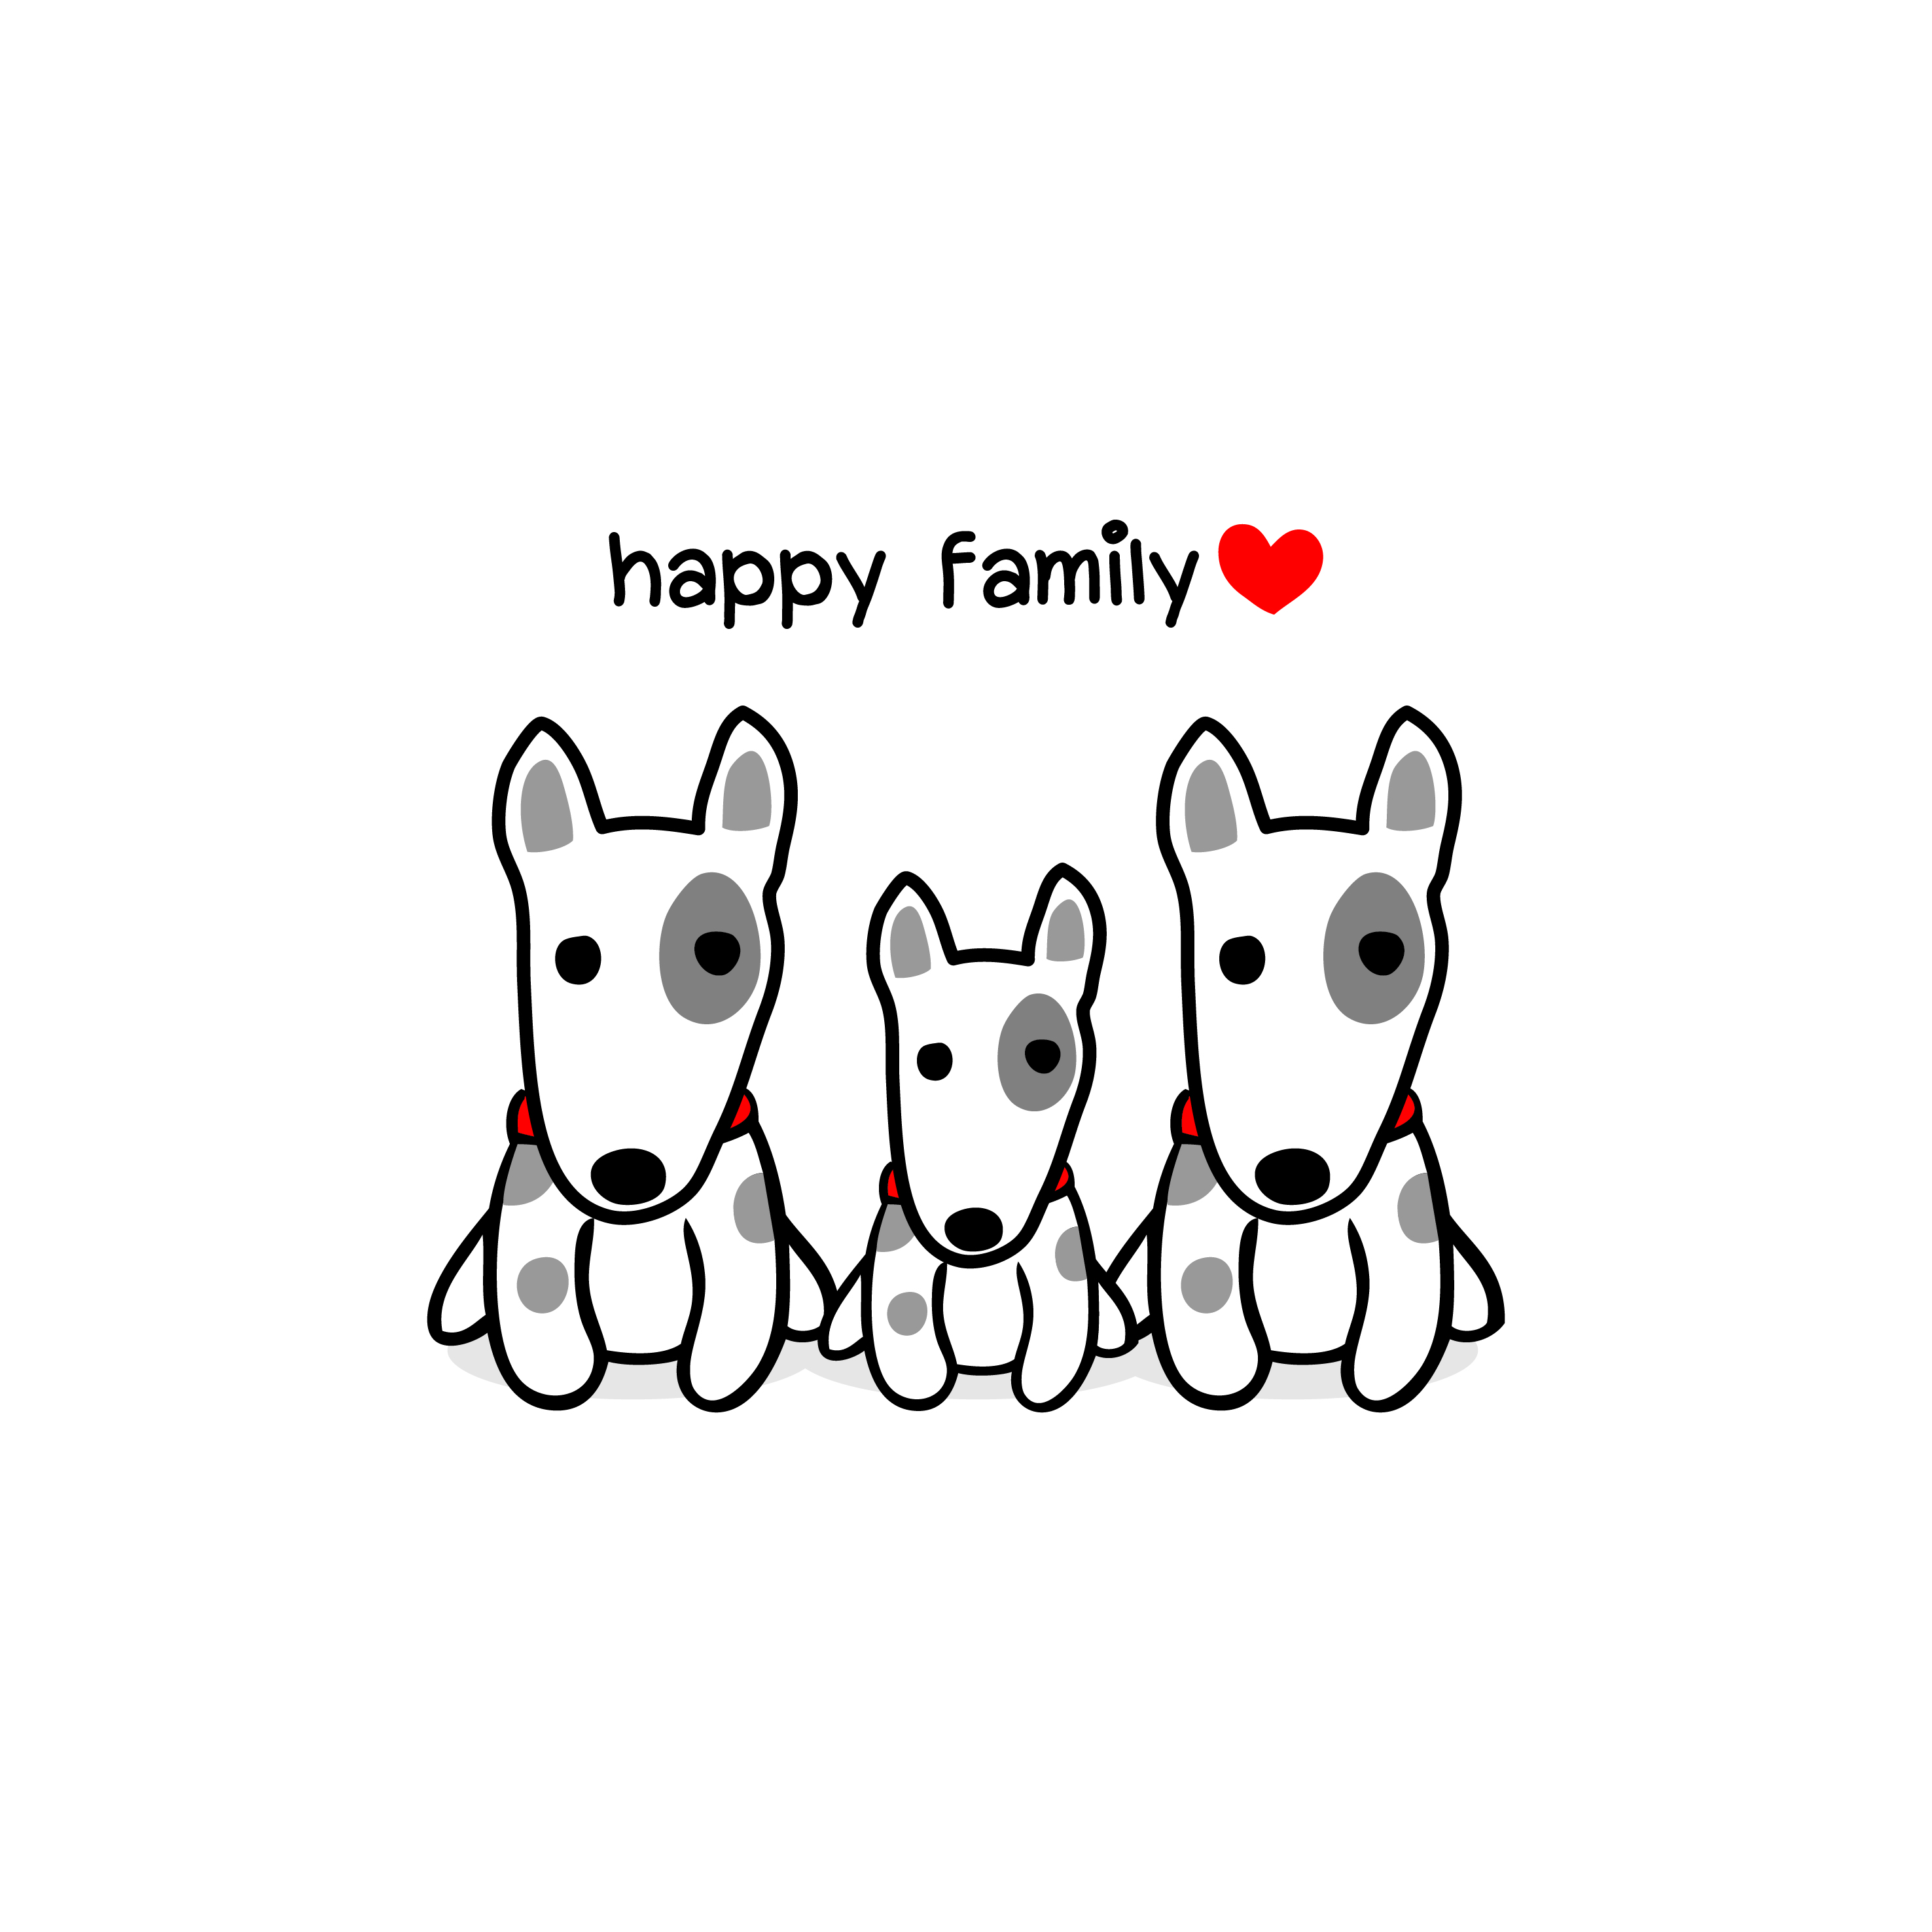 Cute Mother Father And Baby Dog Happy Animal Family Cartoon Vector Illustration Download Free Vectors Clipart Graphics Vector Art